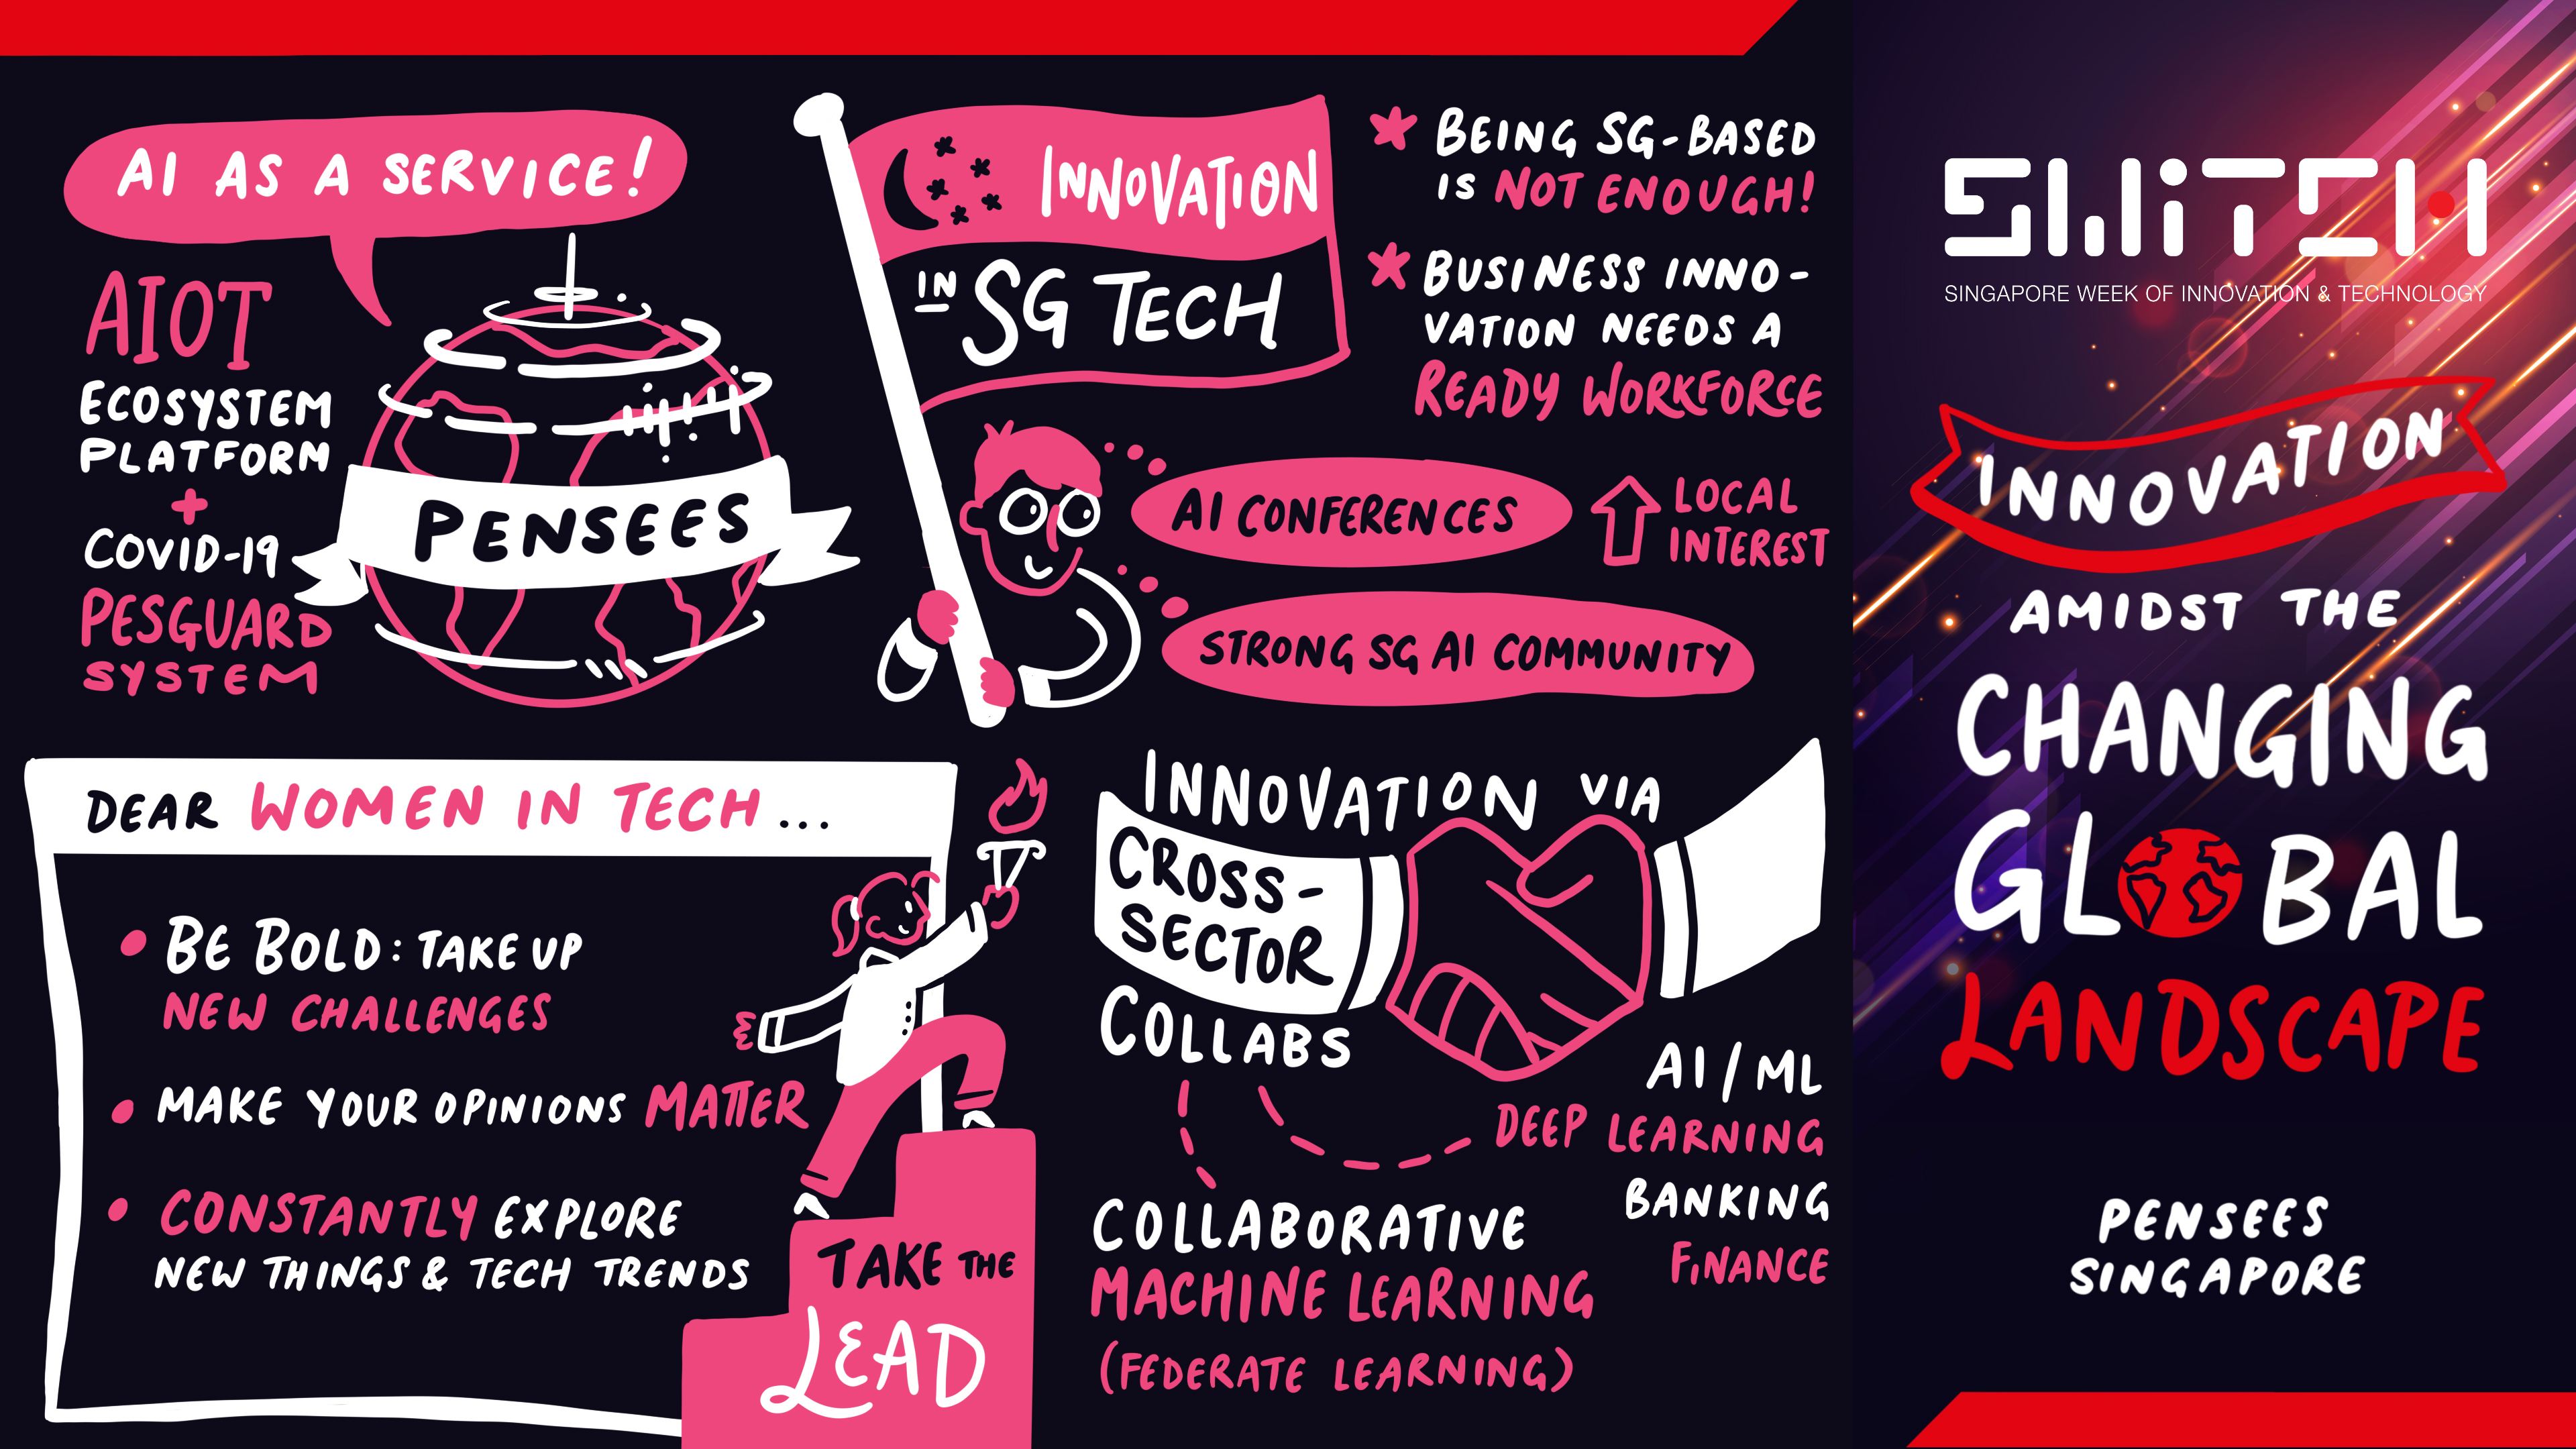 Innovation Amidst the Changing Global Landscape